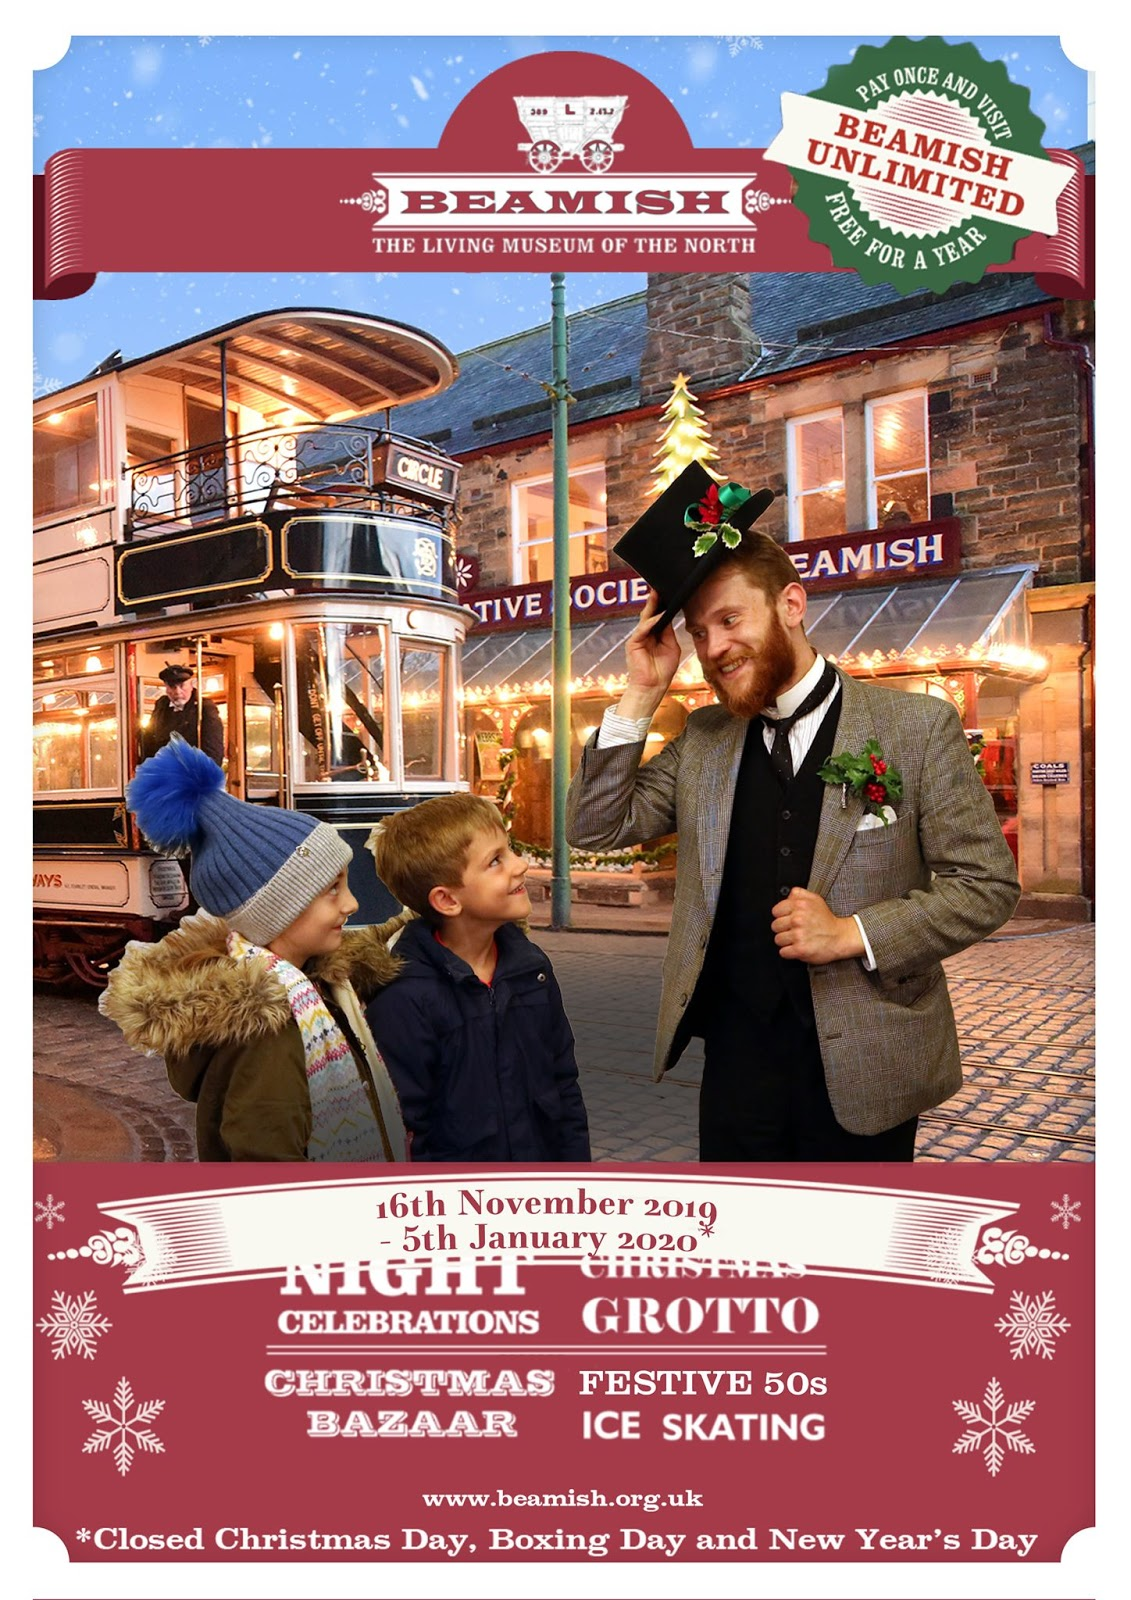 20 Christmas Eve Events for Kids in North East England  - Beamish